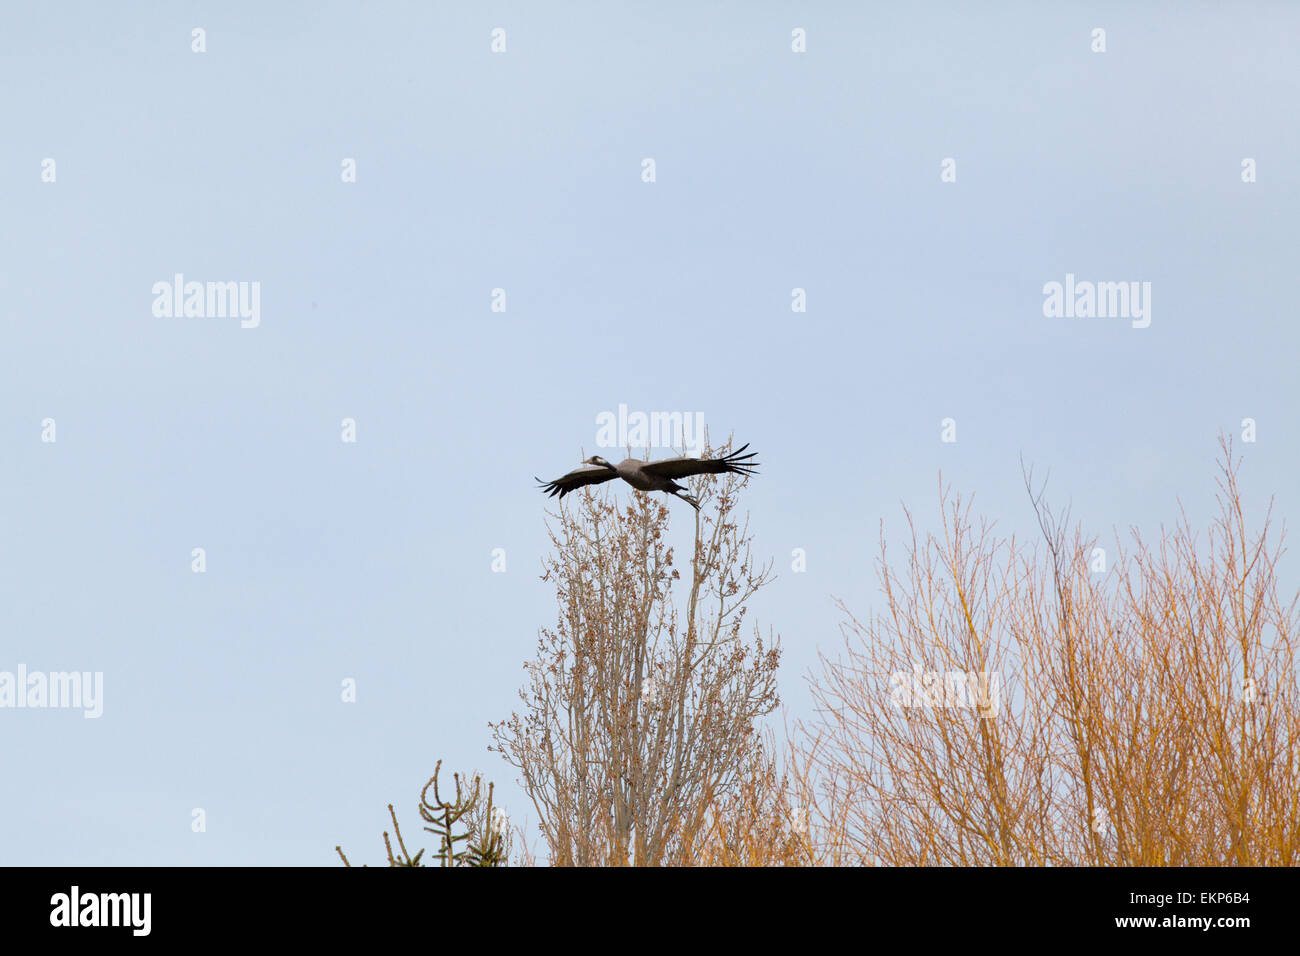 Eurasian or Common Crane (Grus grus). Clearing Willow (Salix sp. ) tree tops to negotiate towards a landing site. - Stock Image